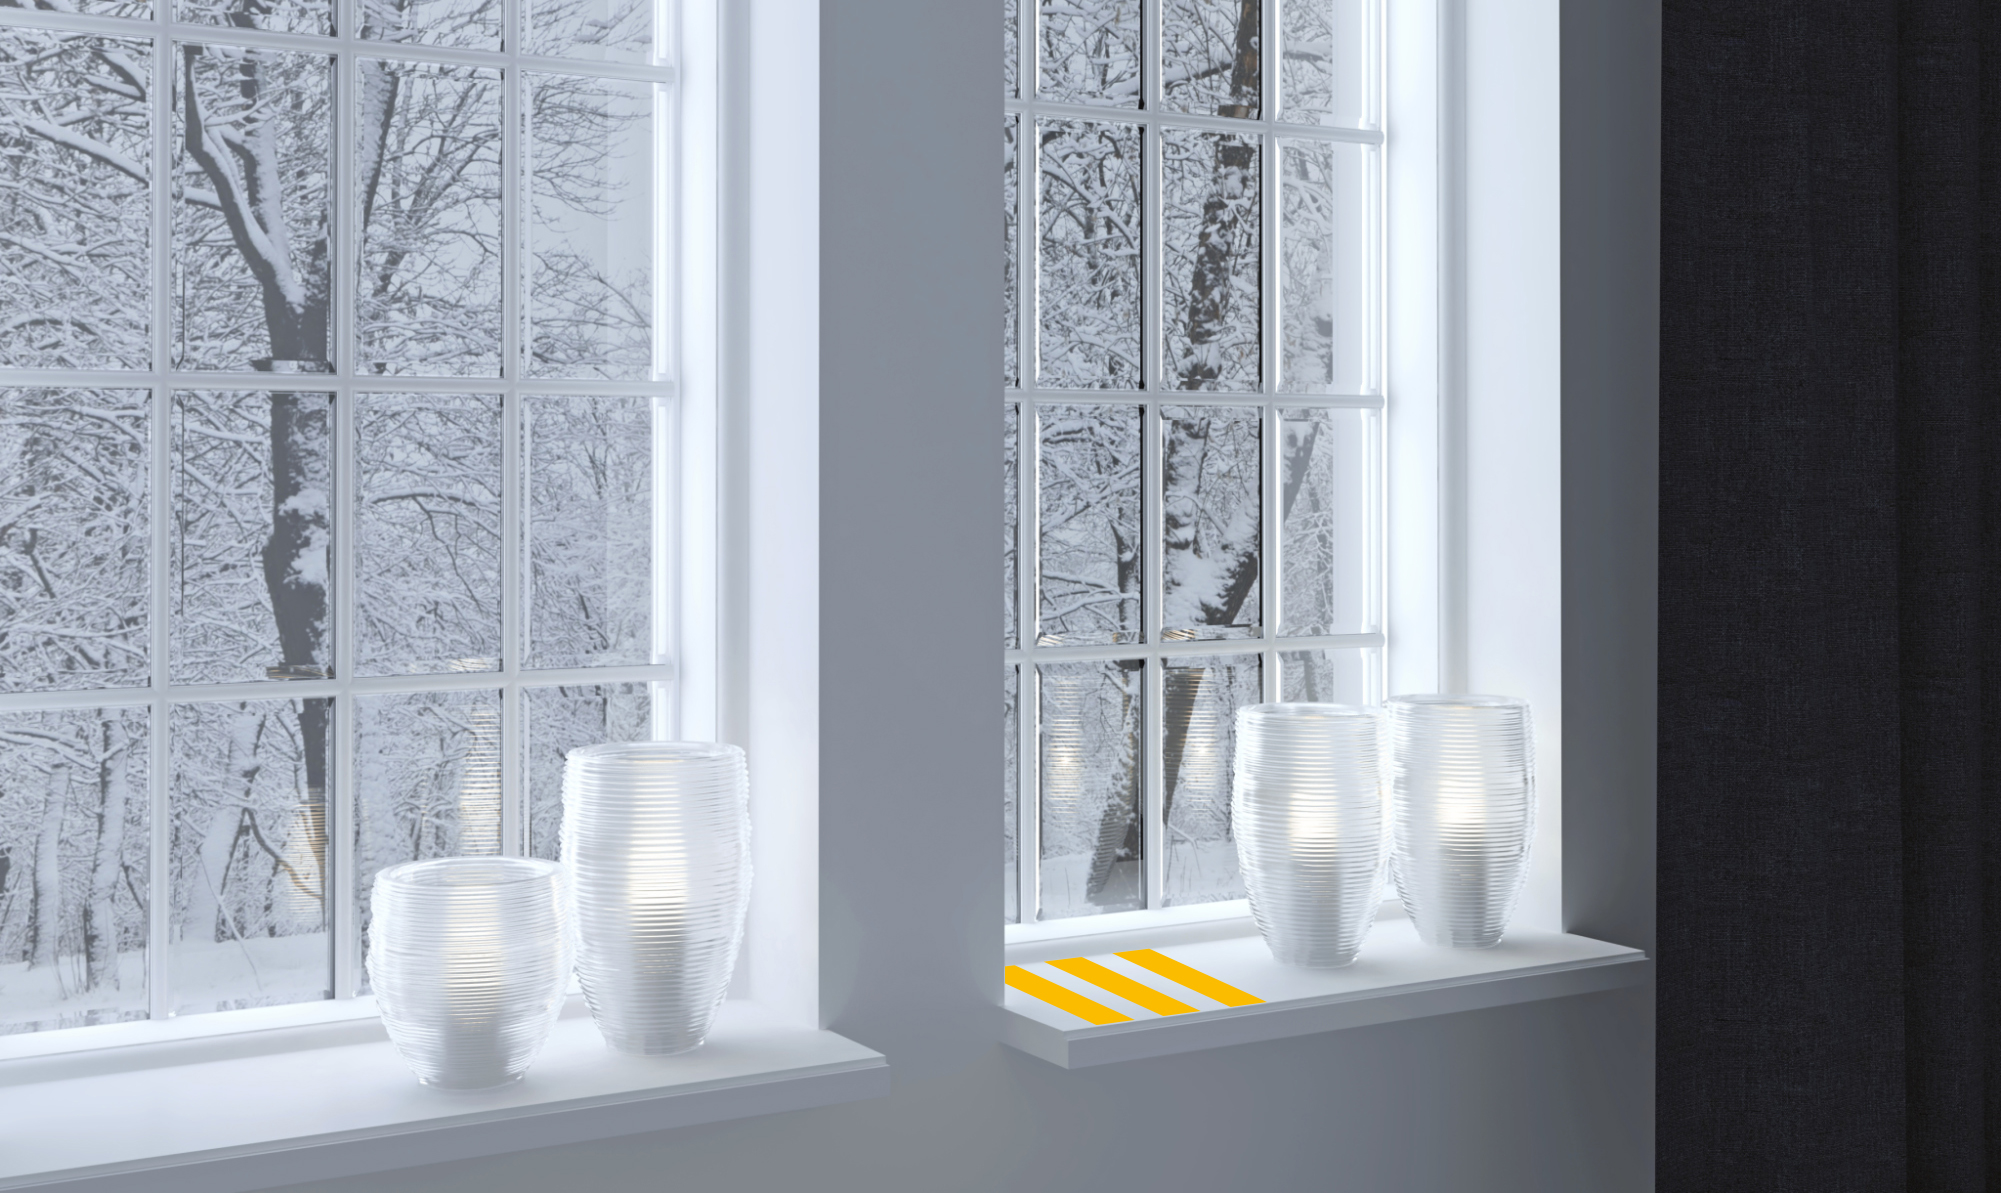 Inter shot of candles on a windowsill with snow falling